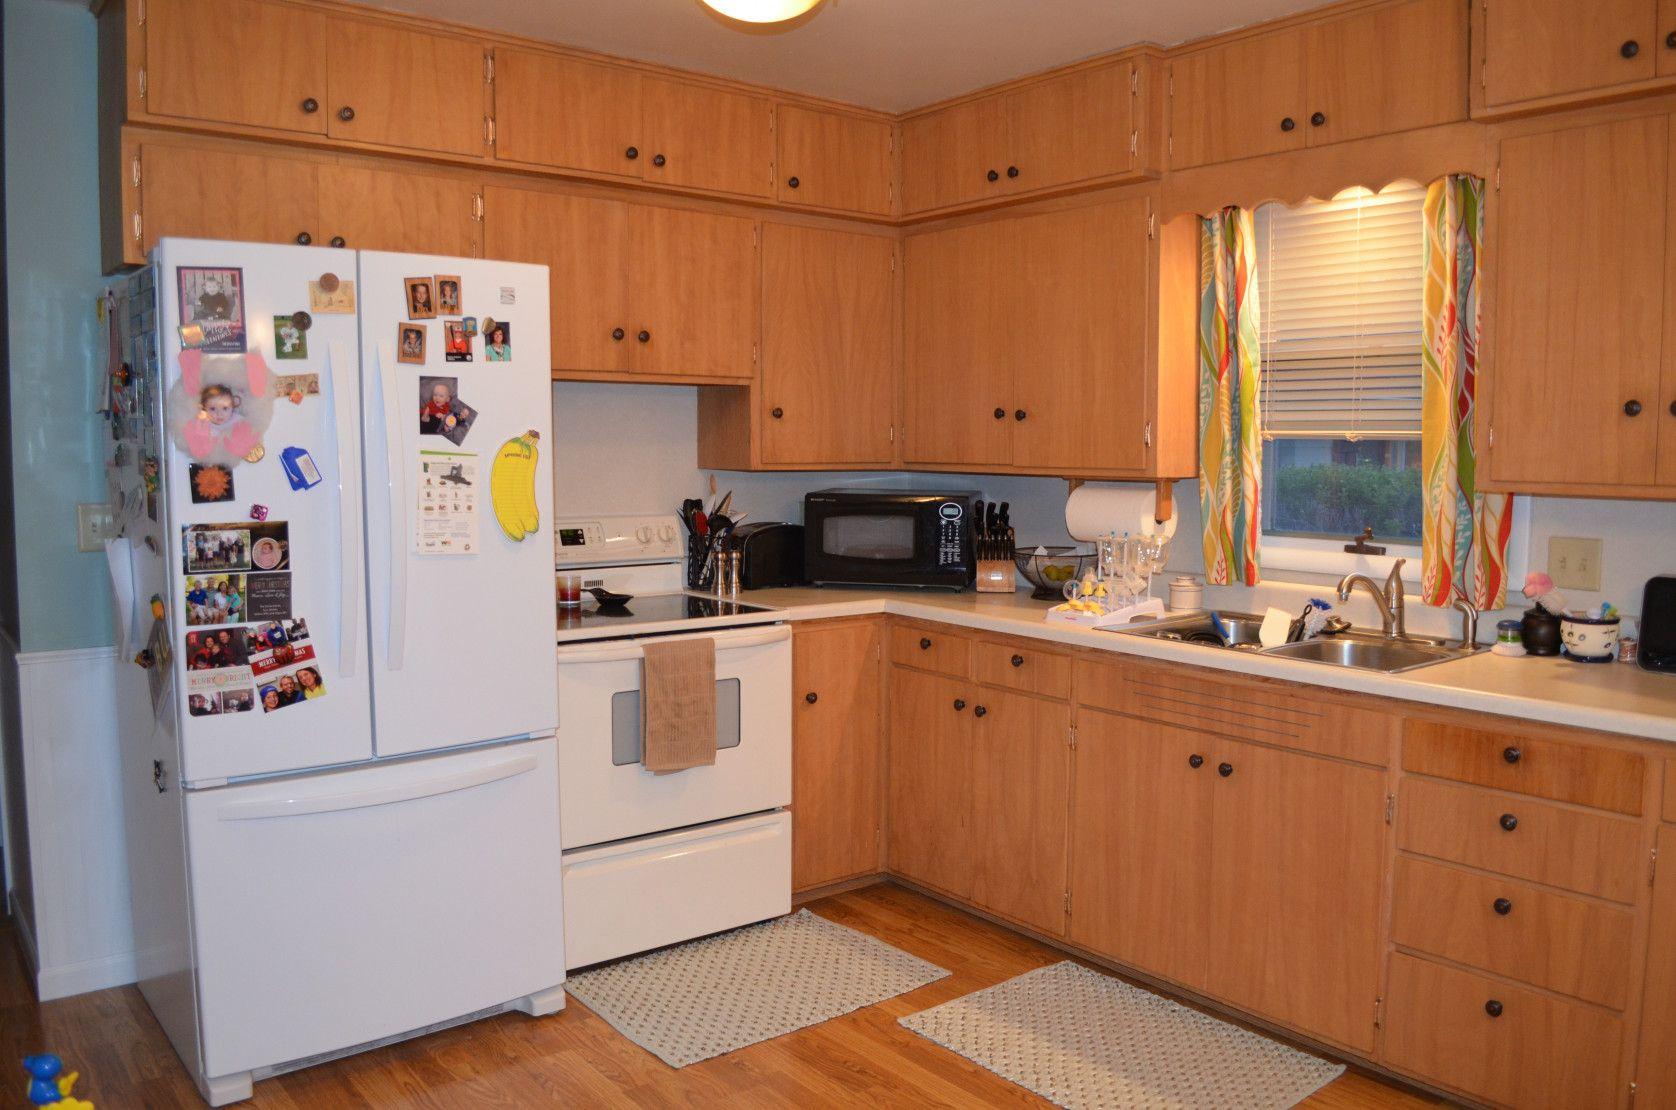 77 Cabinet Pulls For Oak Cabinets Kitchen Design And Layout Ideas Check More At